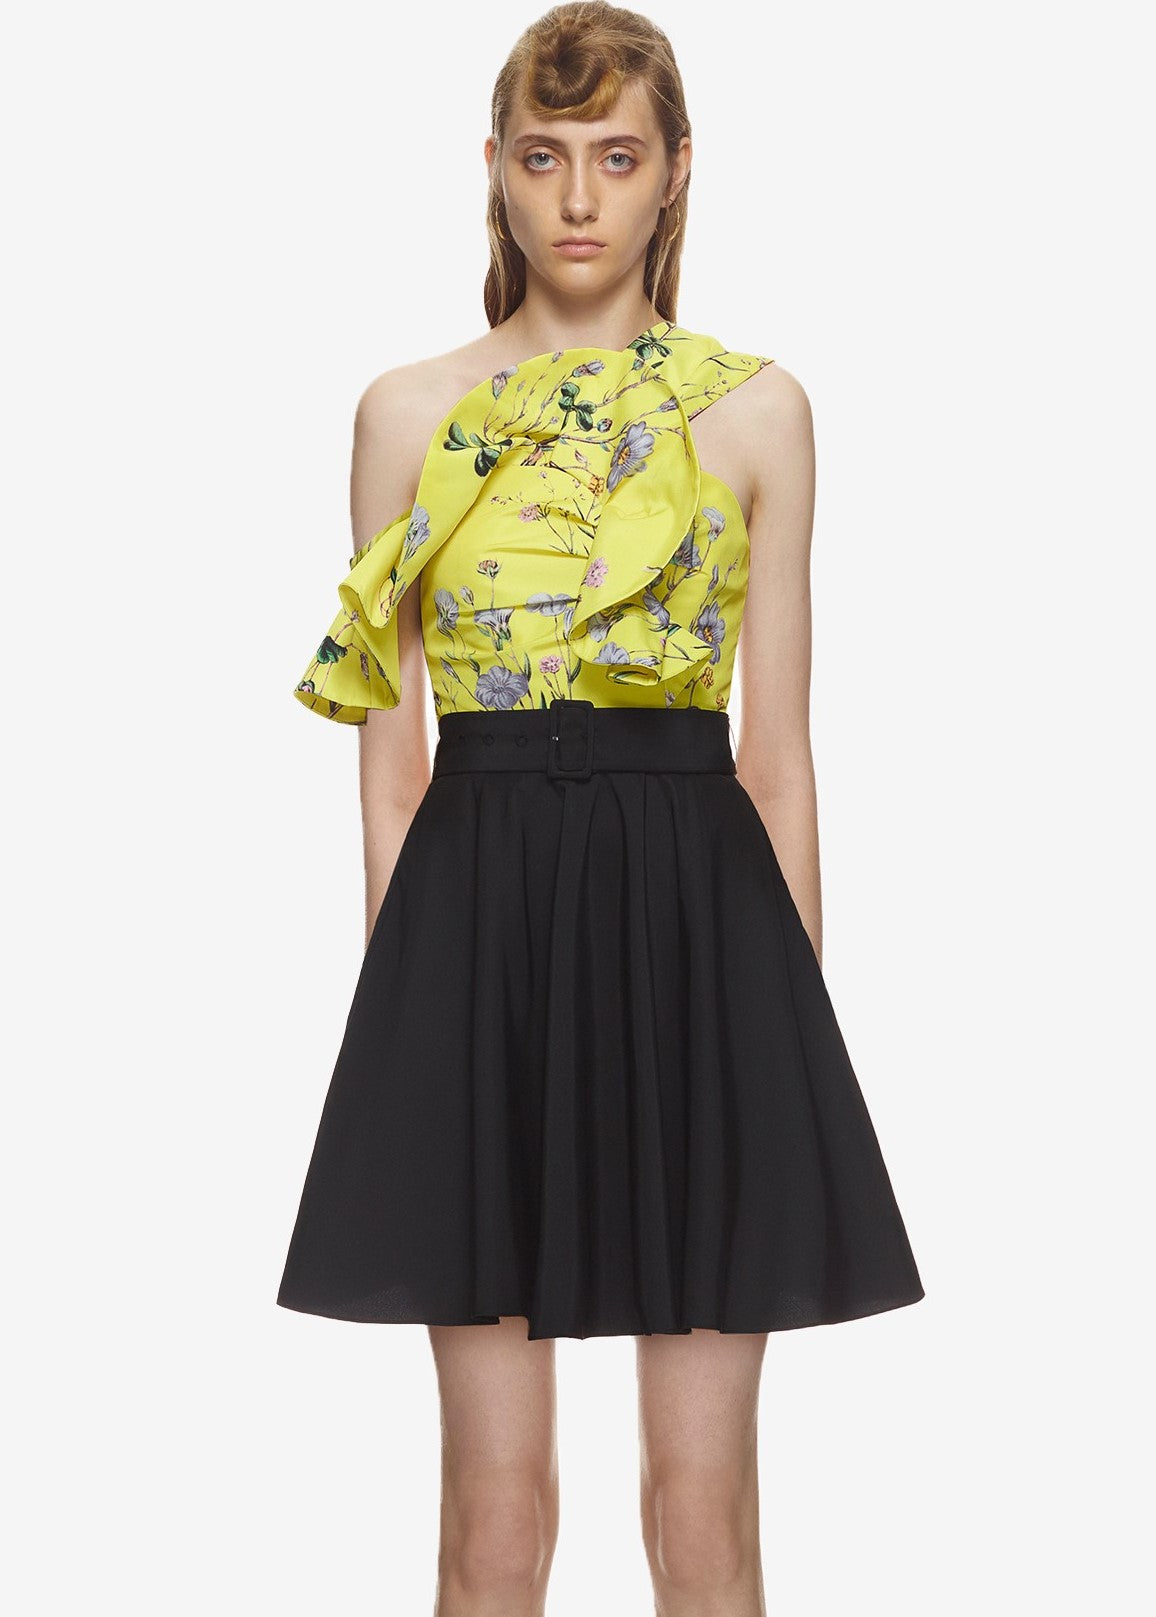 Self Portrait Floral ruffle dress in yellow black